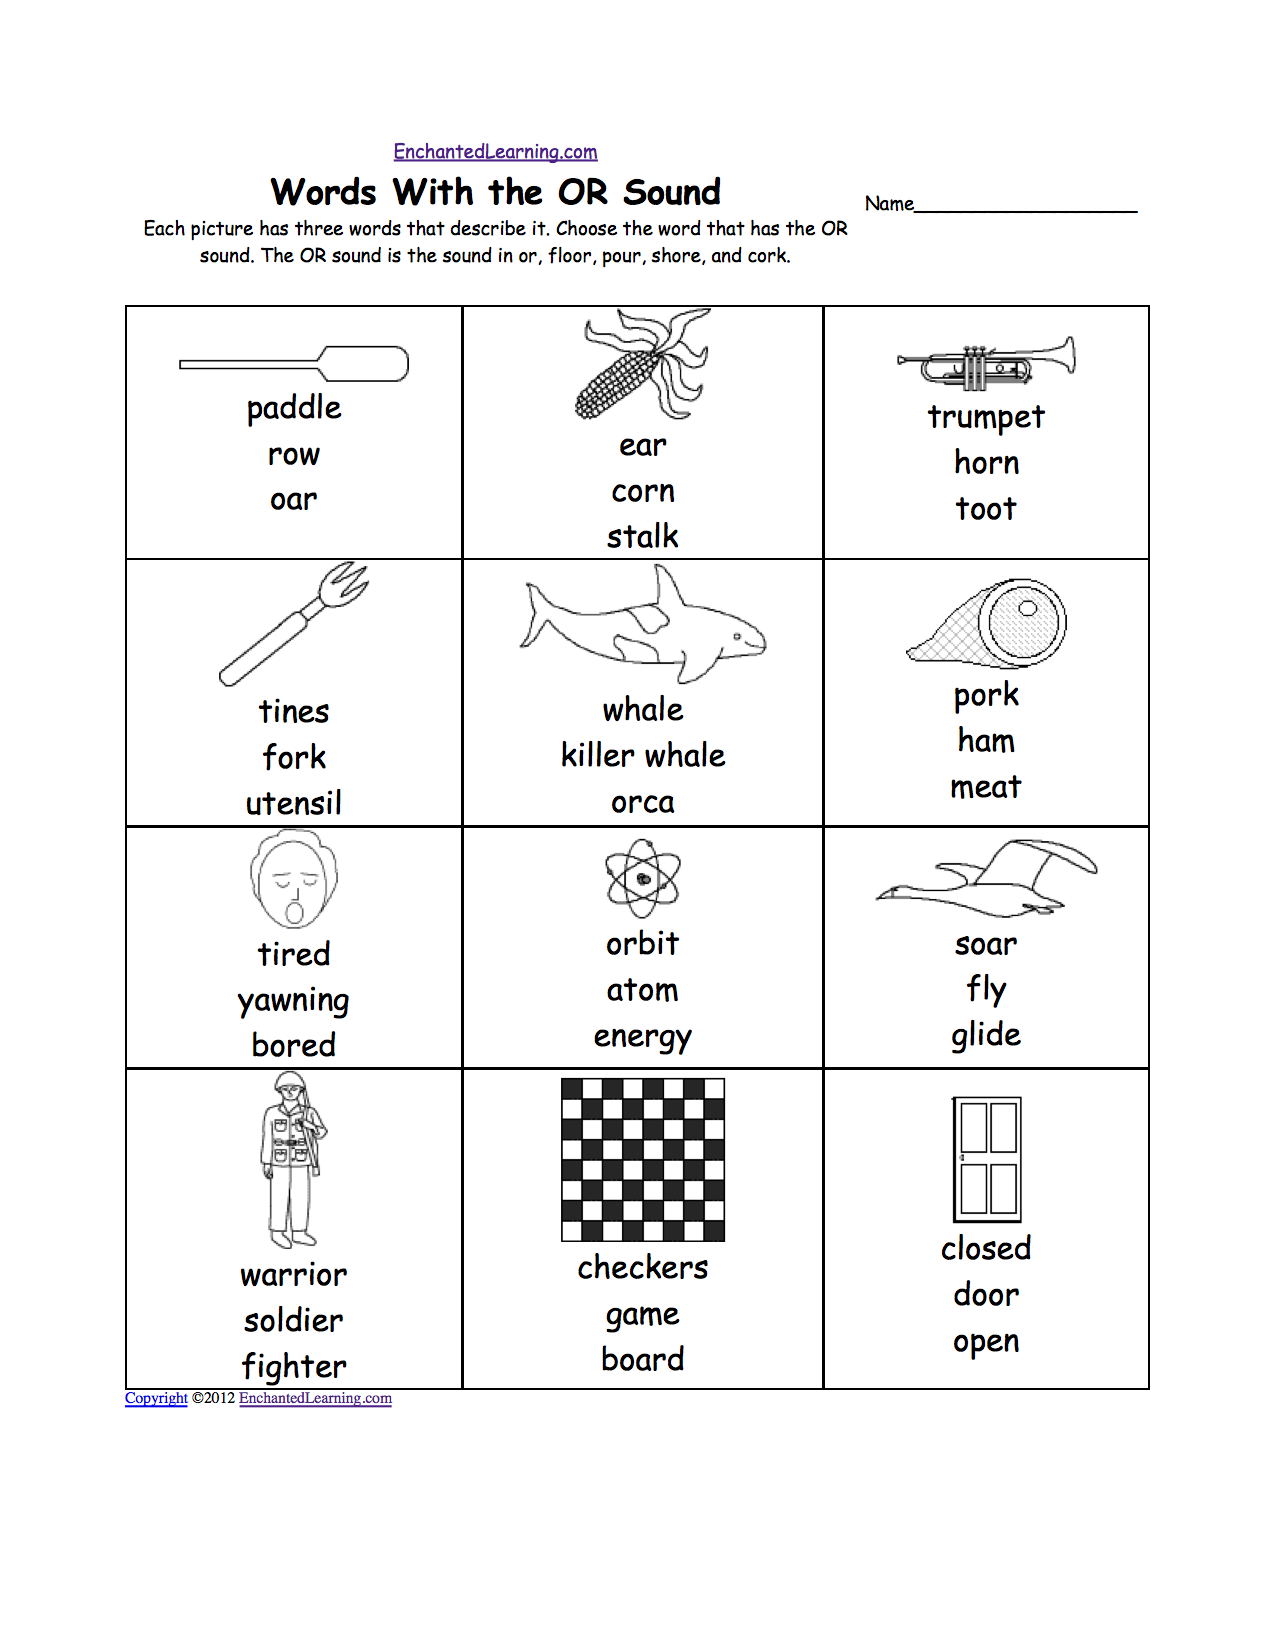 worksheet Or Worksheets phonics worksheets multiple choice to print or worksheet each picture has three words that describe it choose the word or